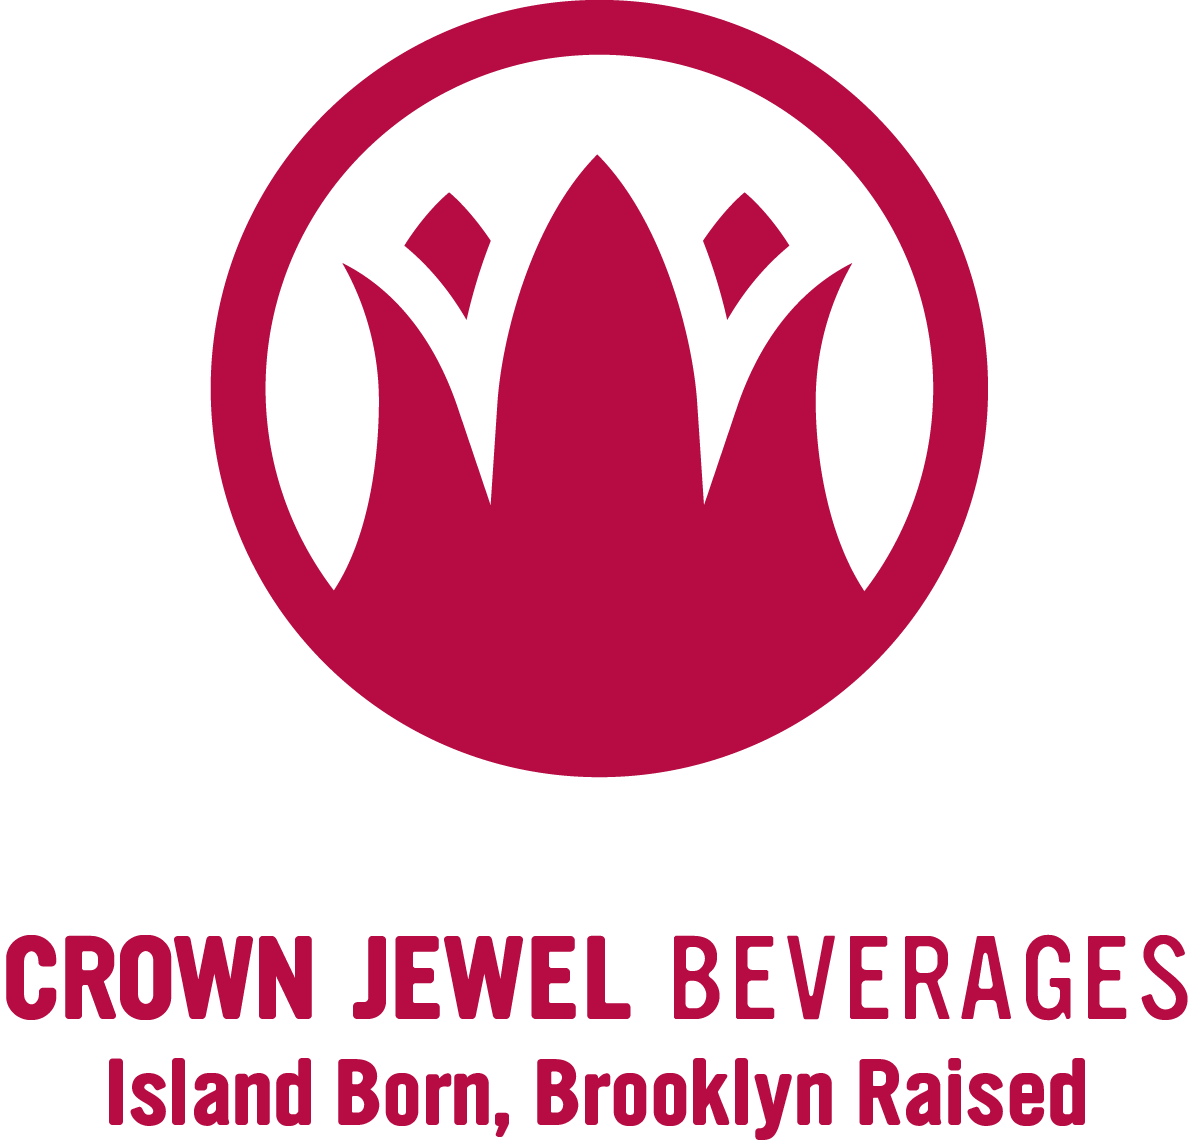 Crown Jewel Beverages